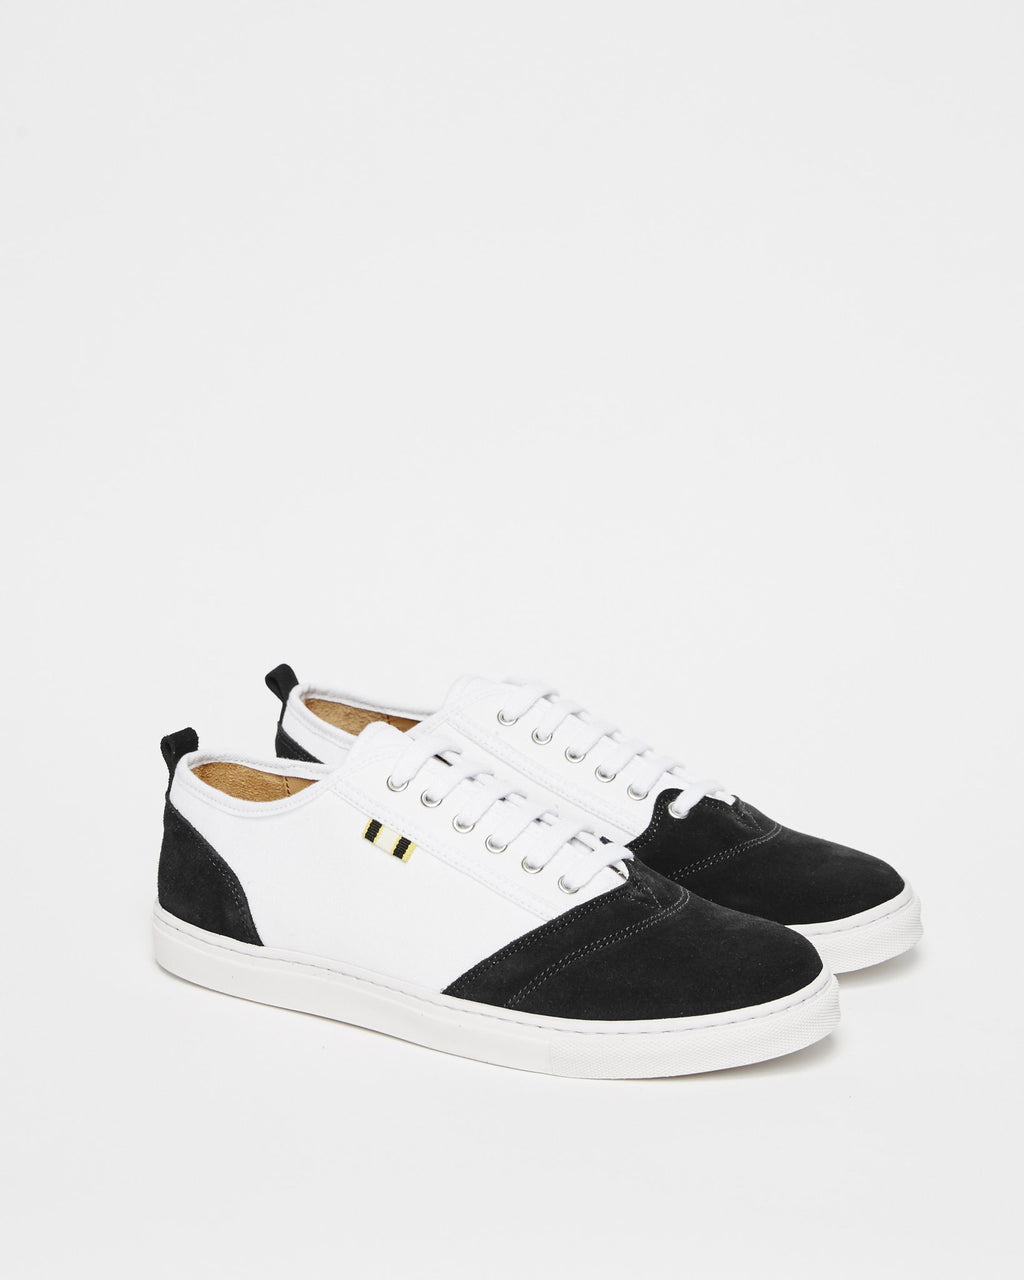 APR001 - Suede & Canvas - White / Black